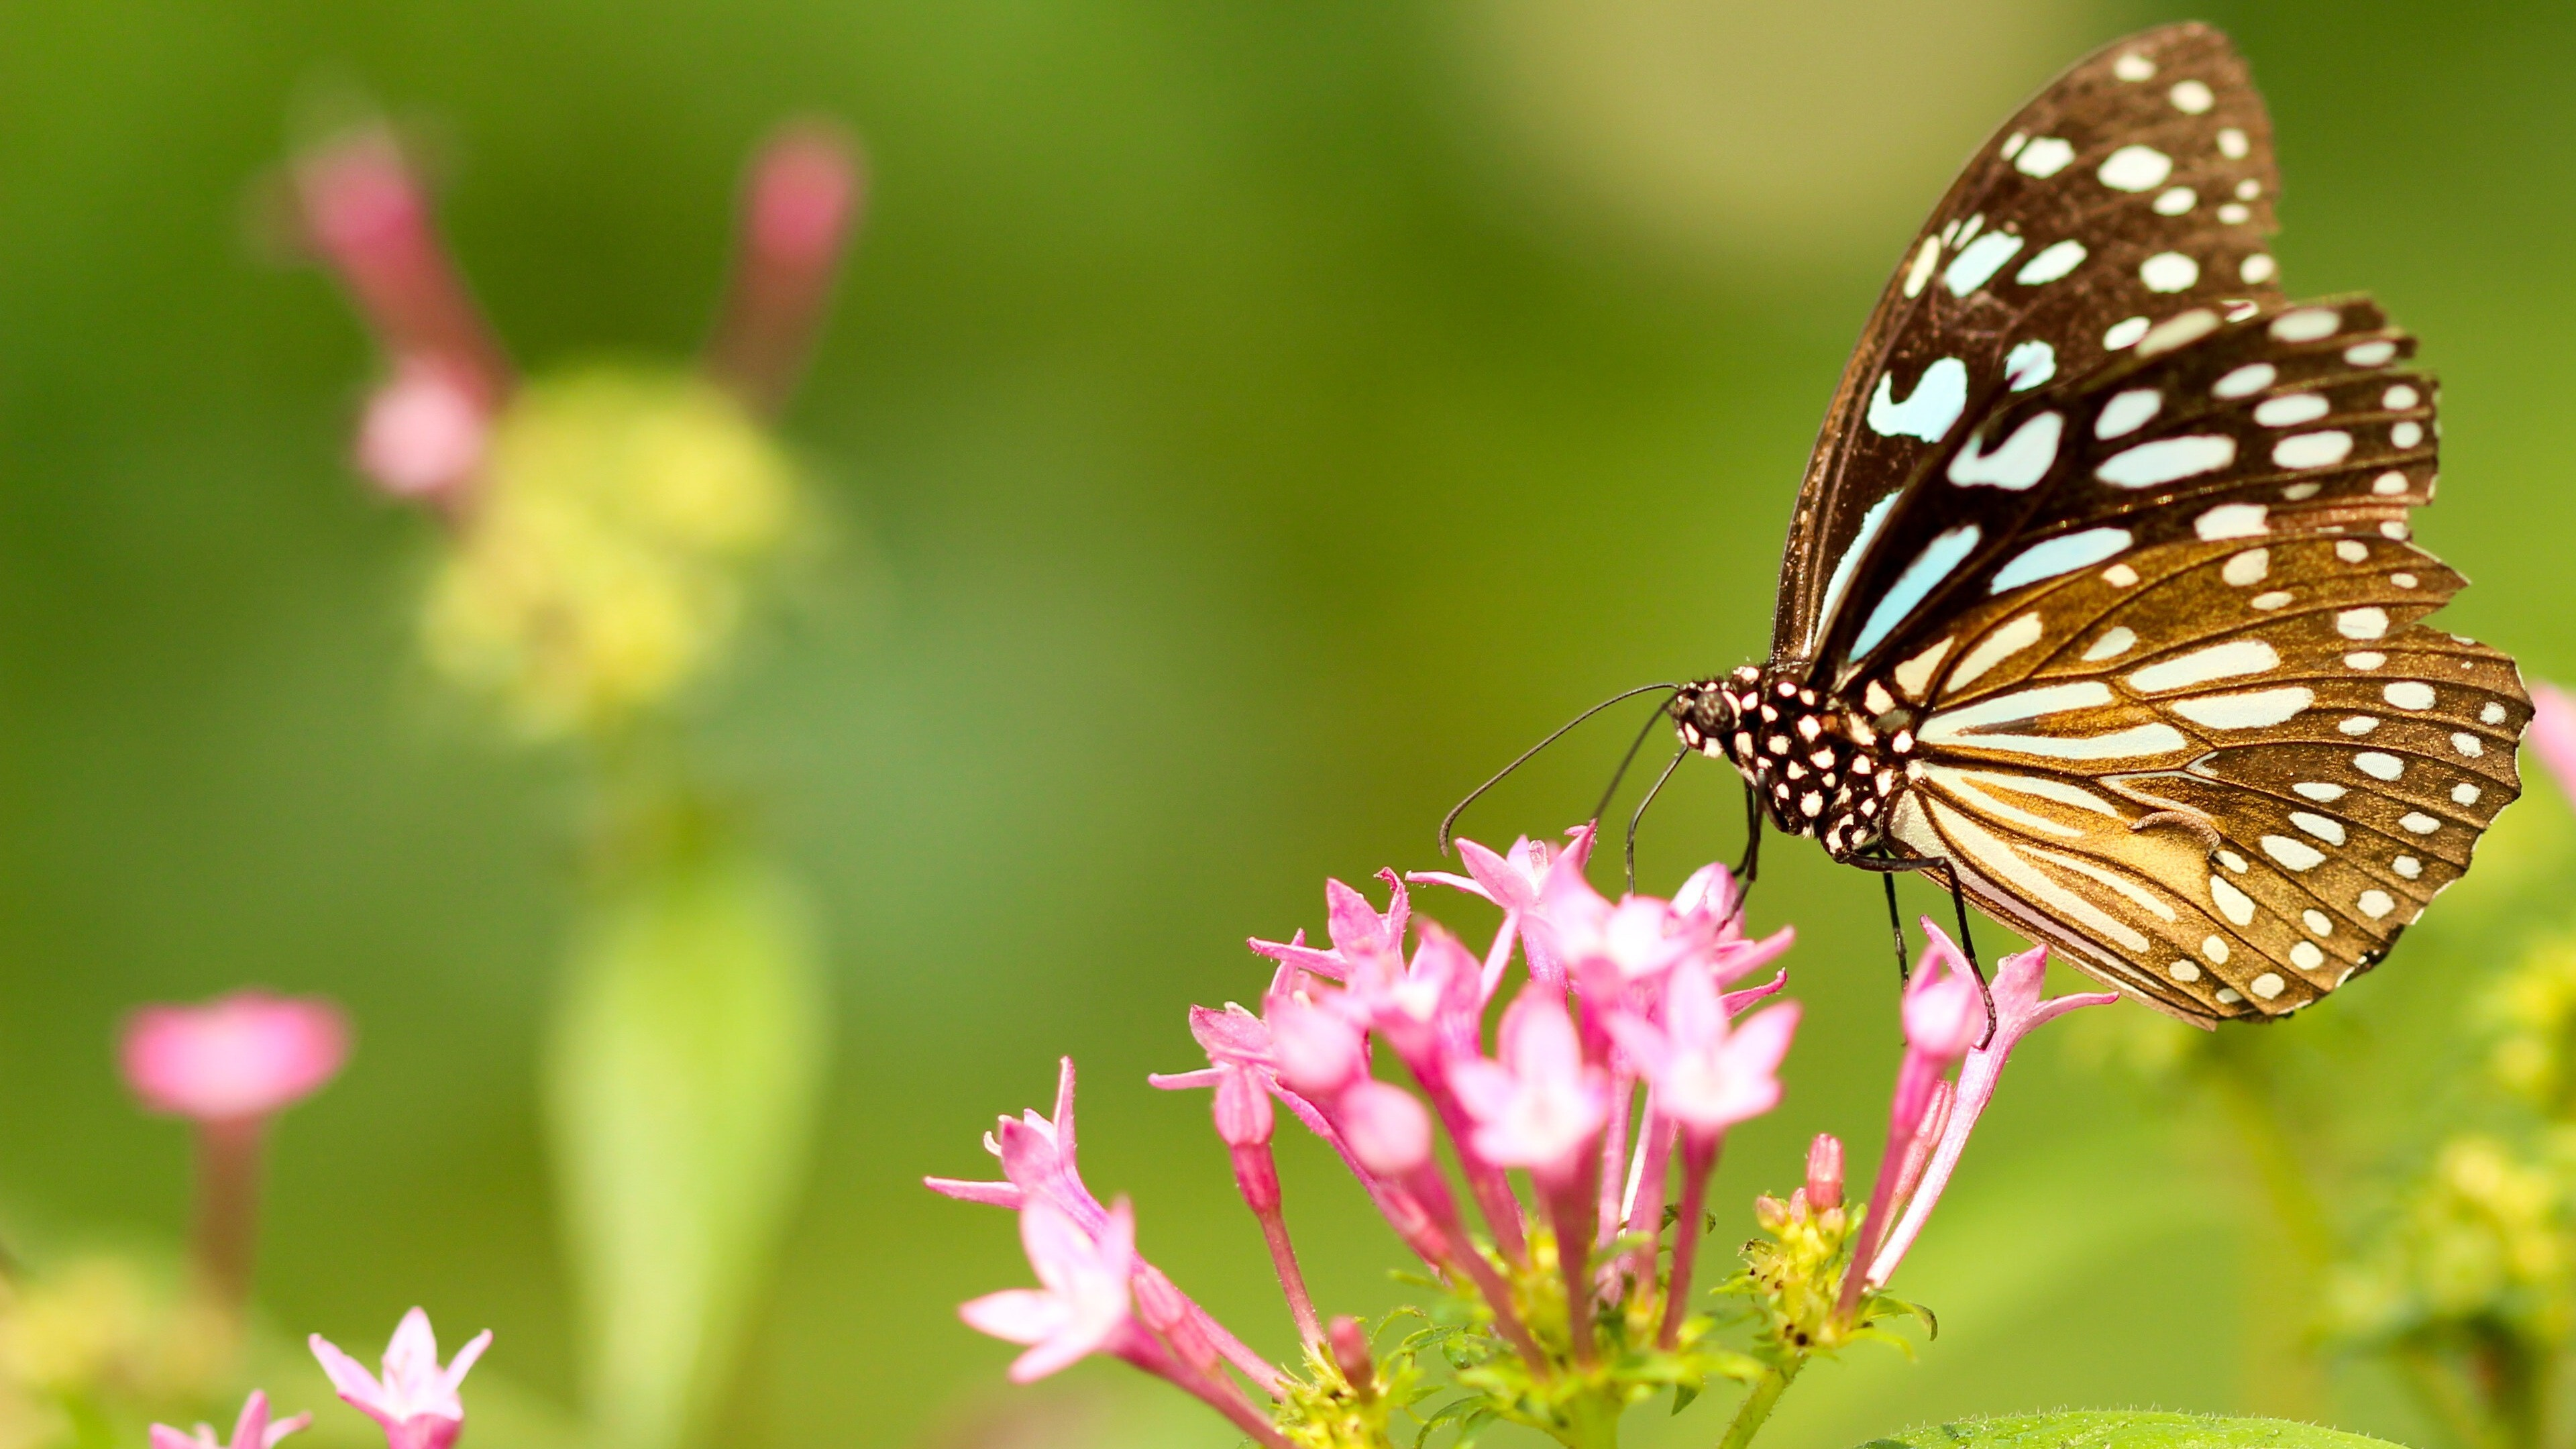 Butterfly on Top of Pink Flowers | HD Wallpapers